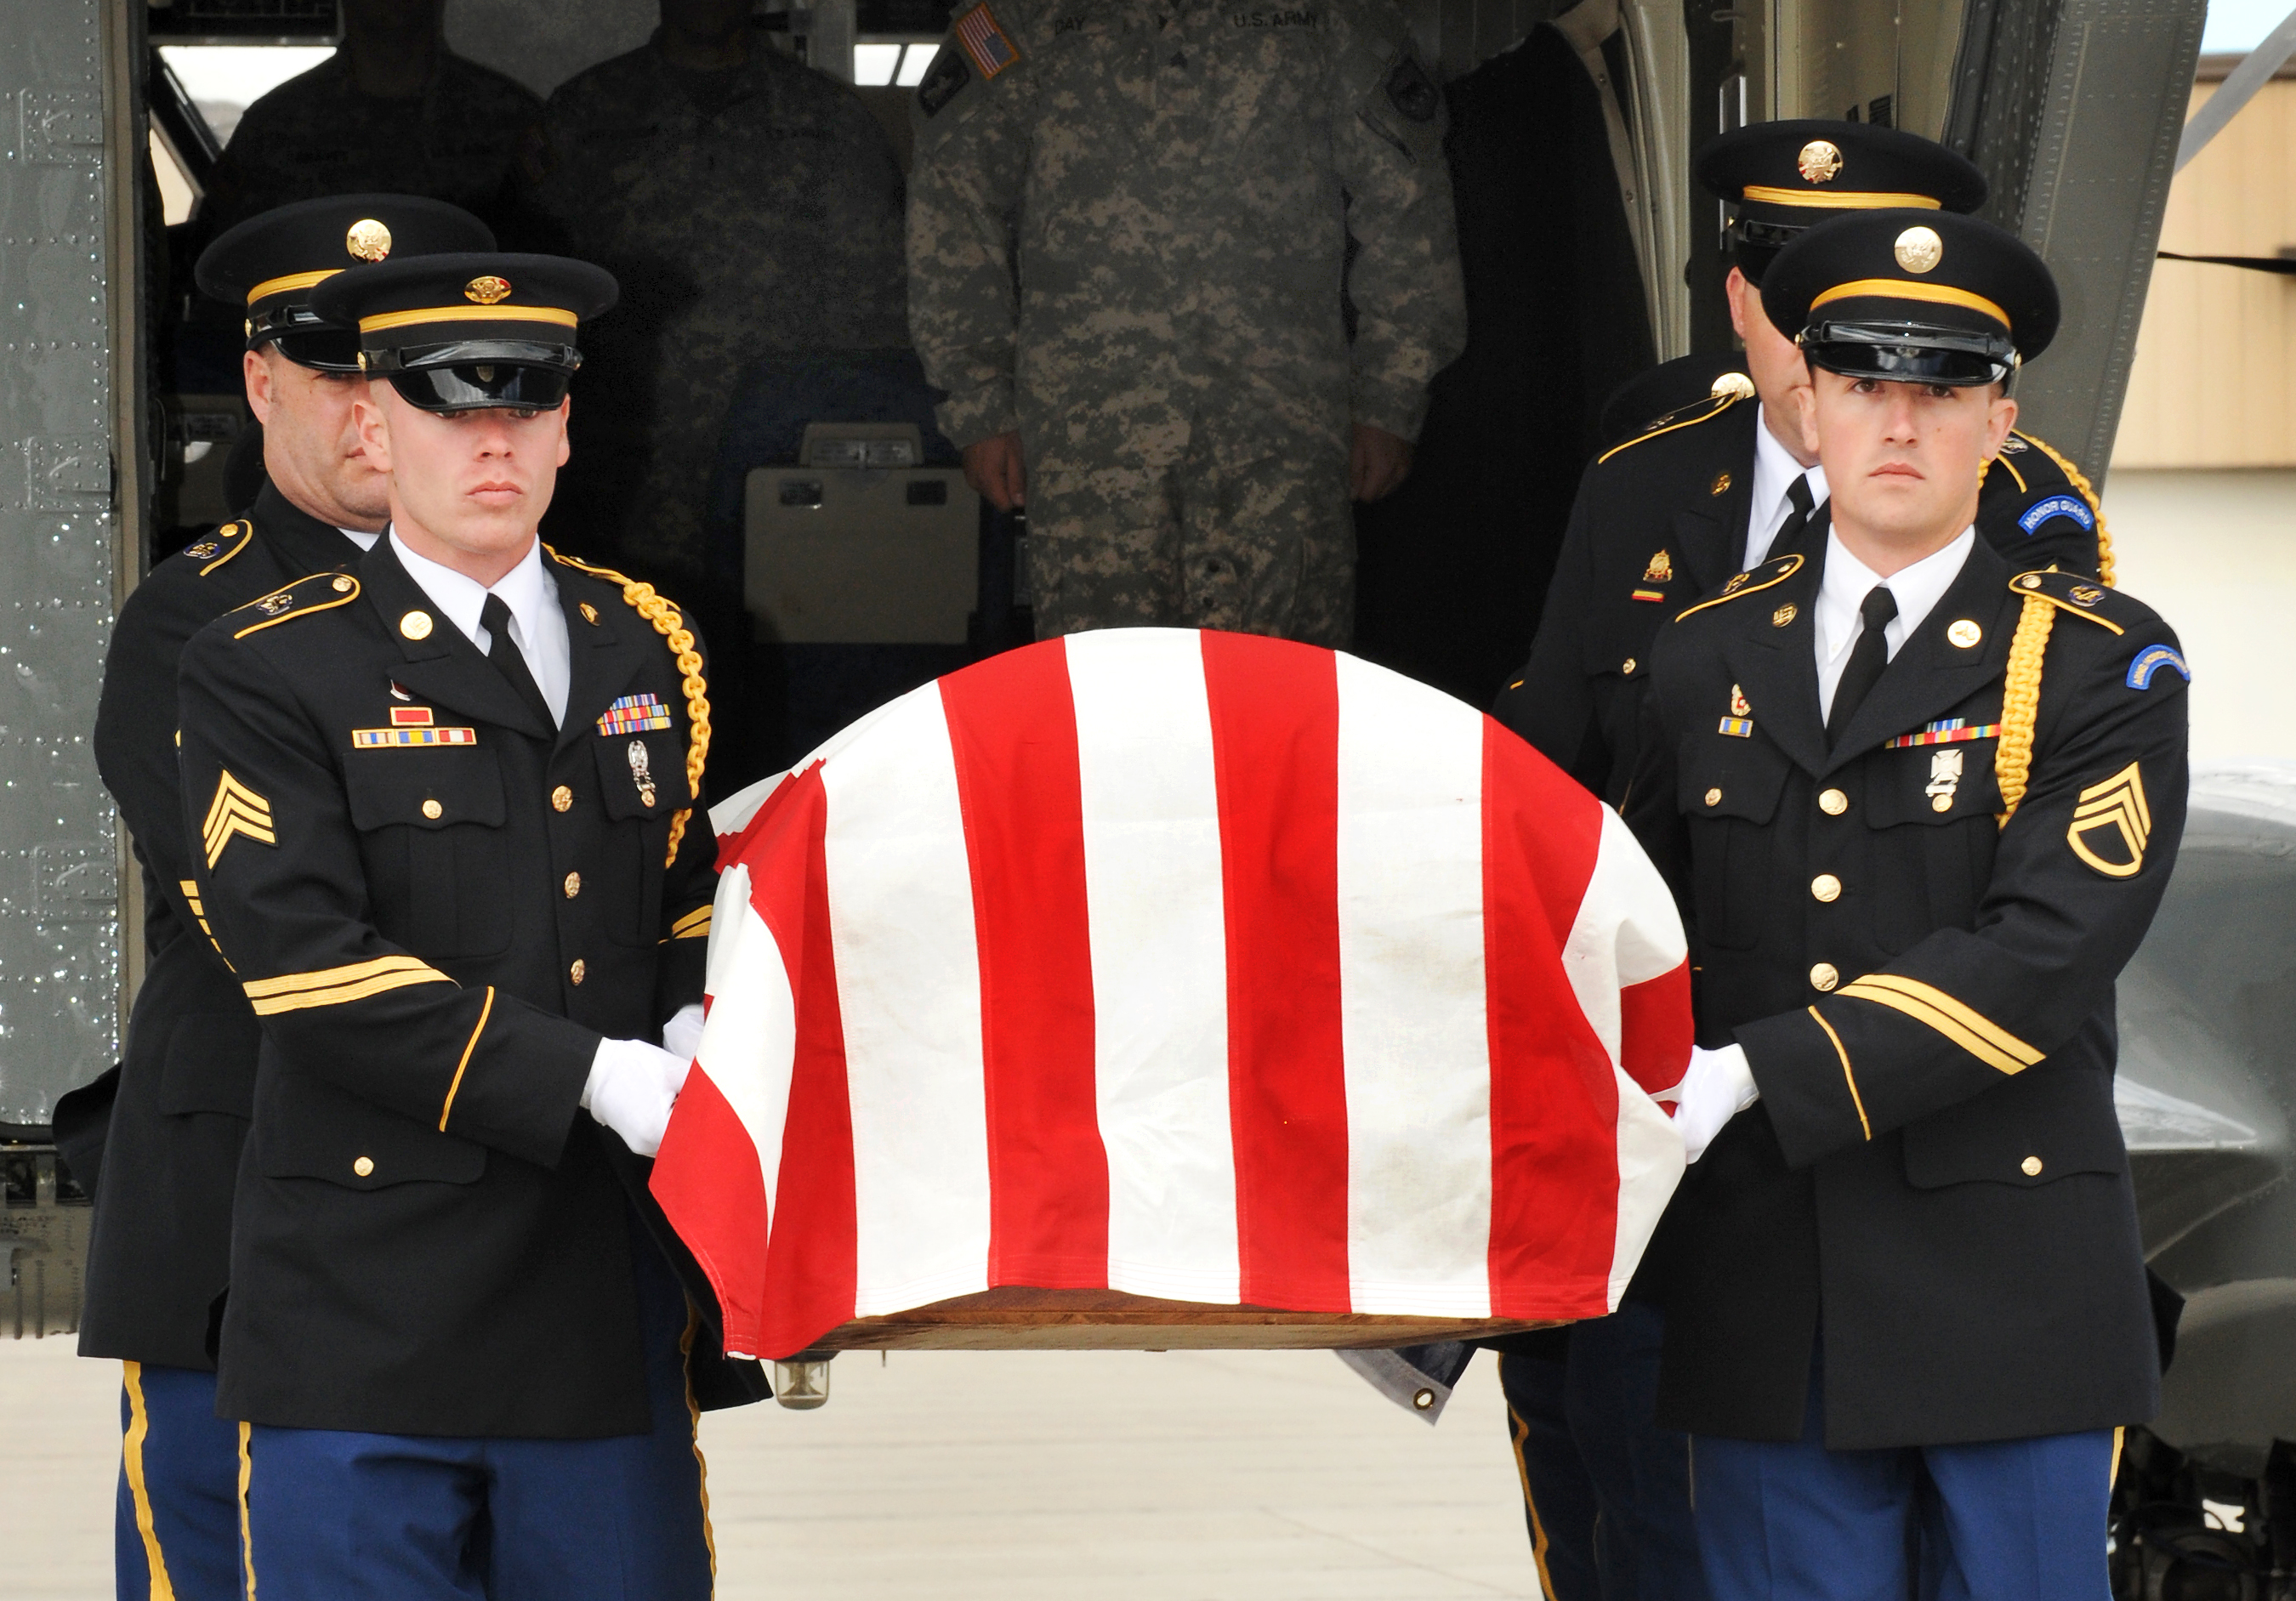 Us Army National Guard >> File:Flickr - The U.S. Army - Laid to rest, 59 years later.jpg - Wikimedia Commons